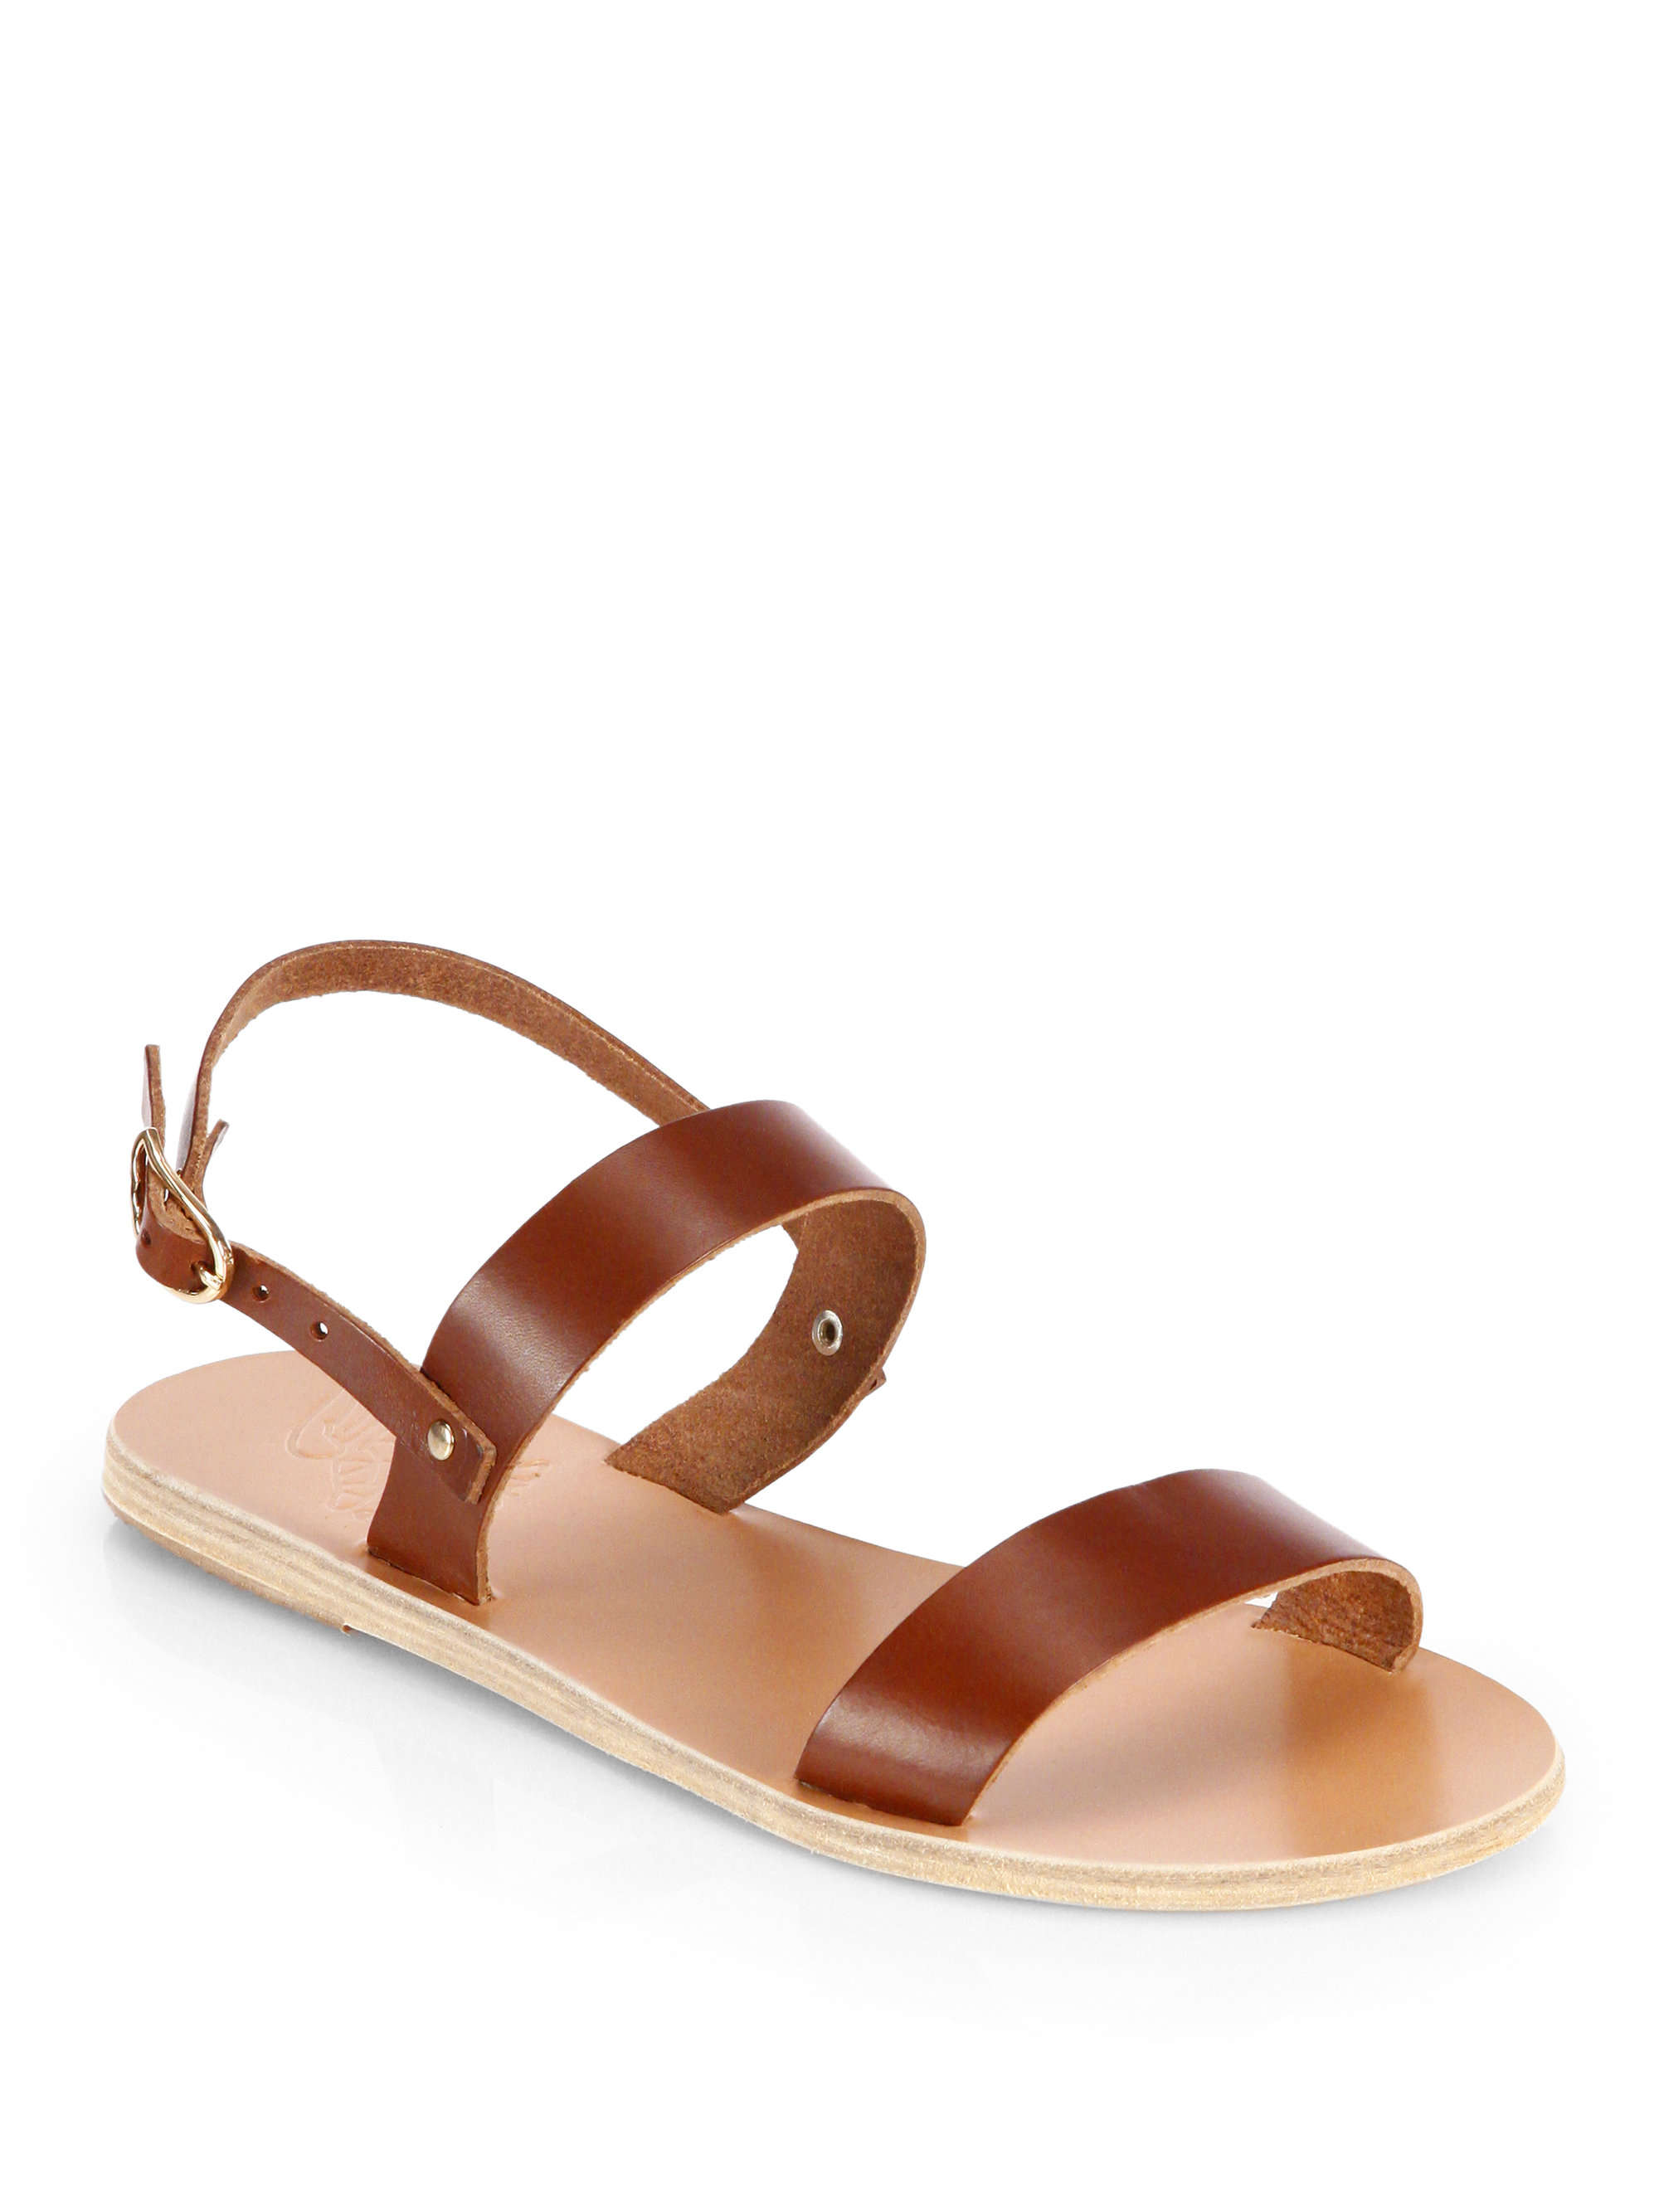 9628cd6273ff85 Lyst - Ancient Greek Sandals Clio Leather Slingback Sandals in Brown